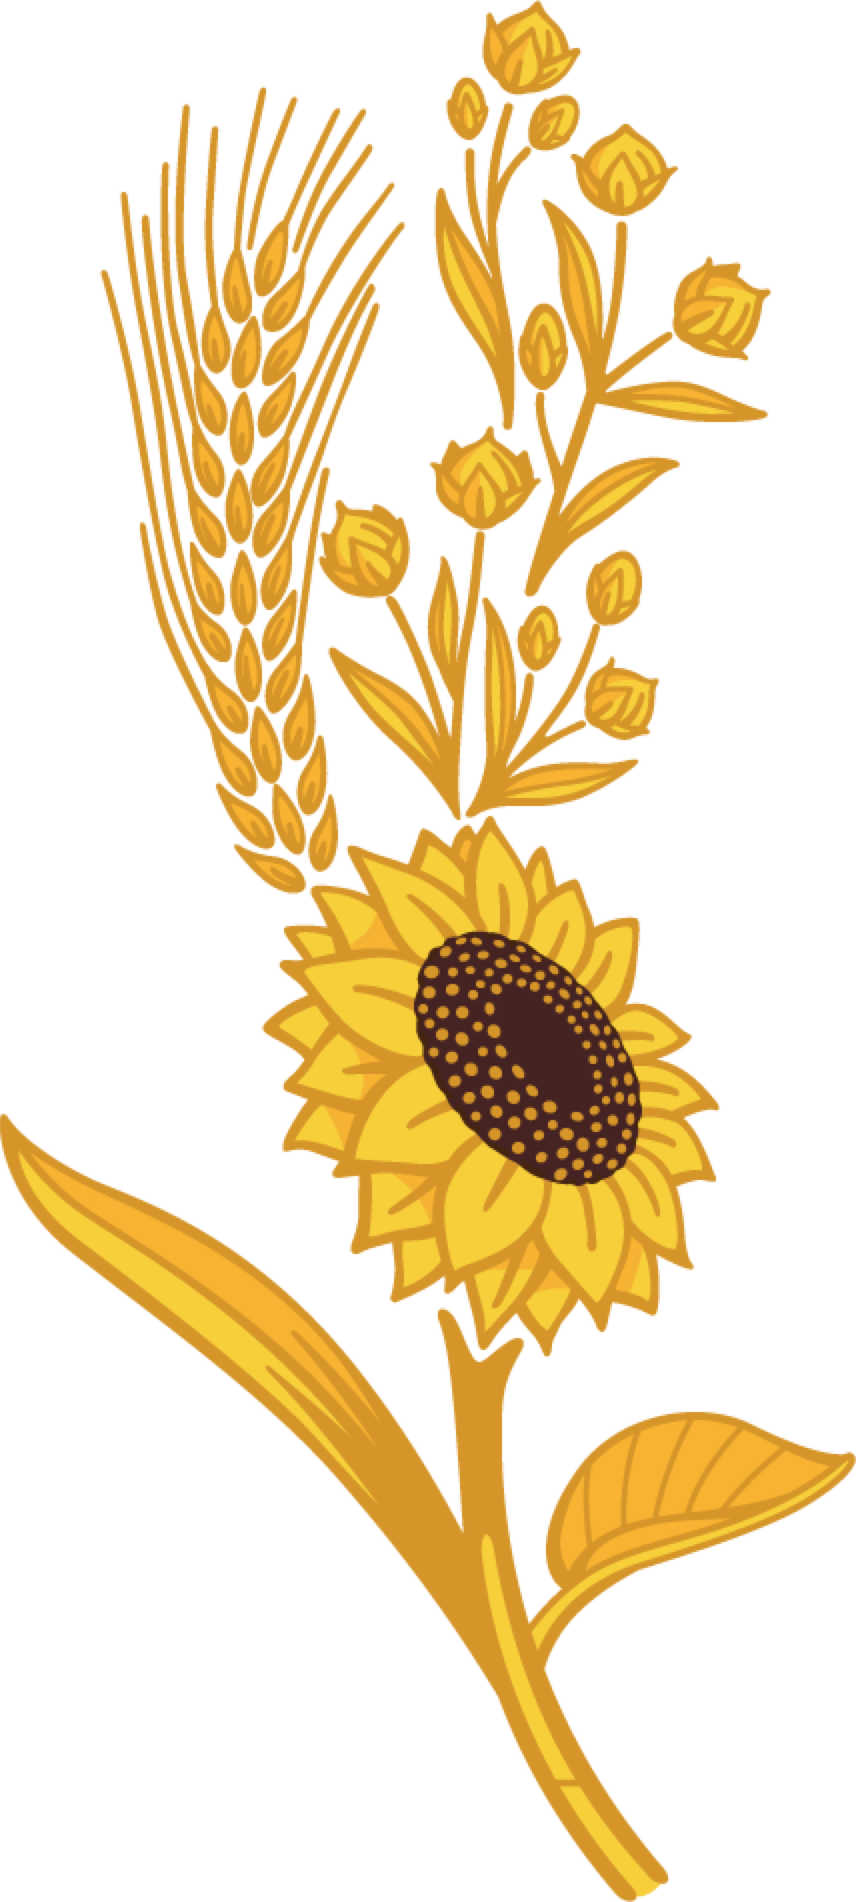 Harvest clipart sunflower. Seeds grains country